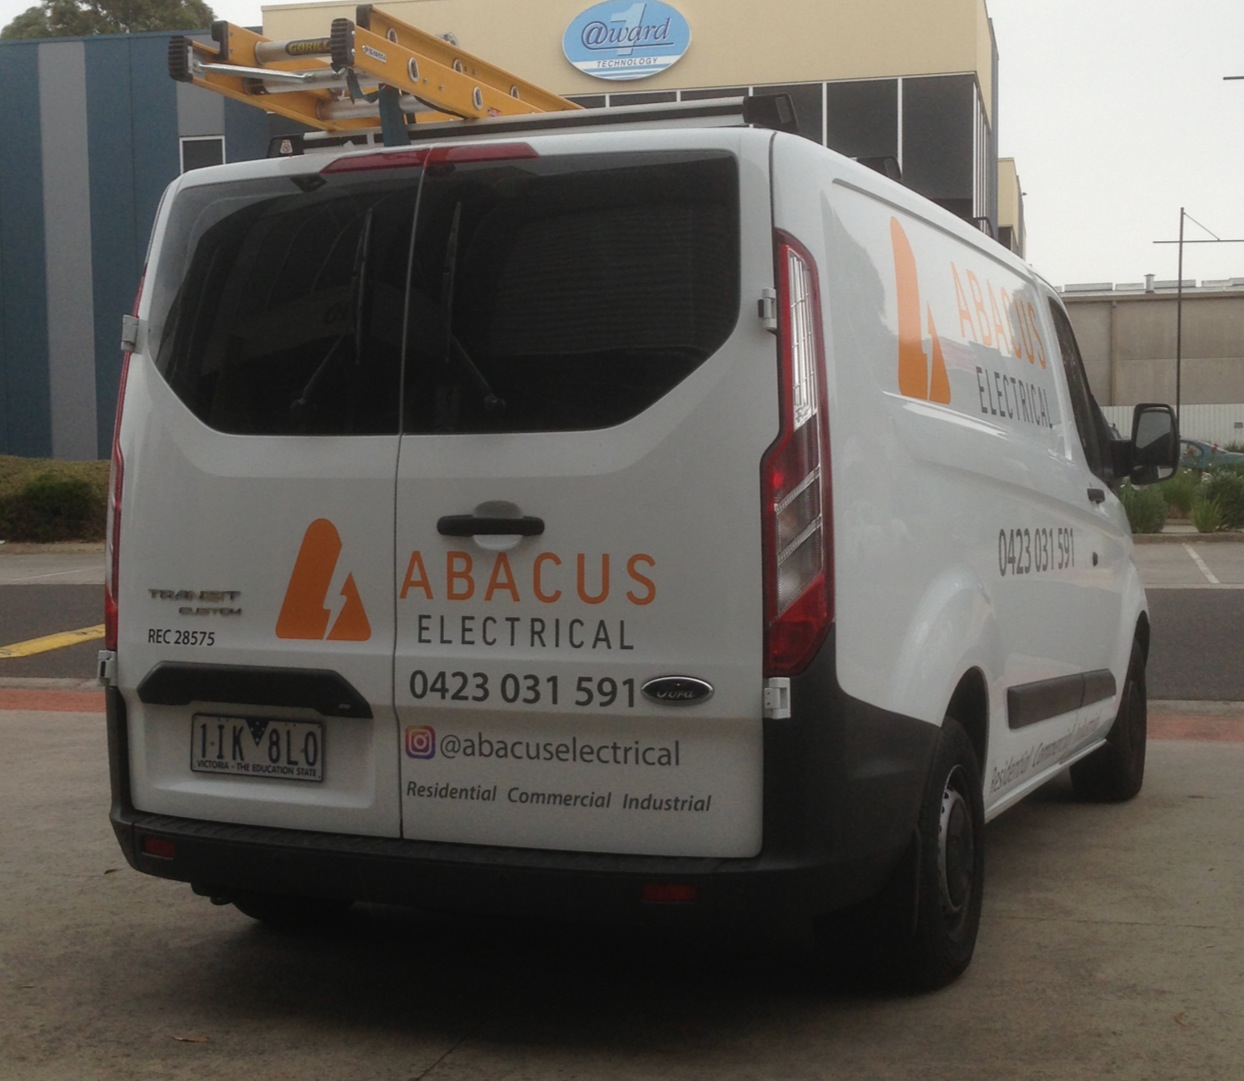 Abacus1